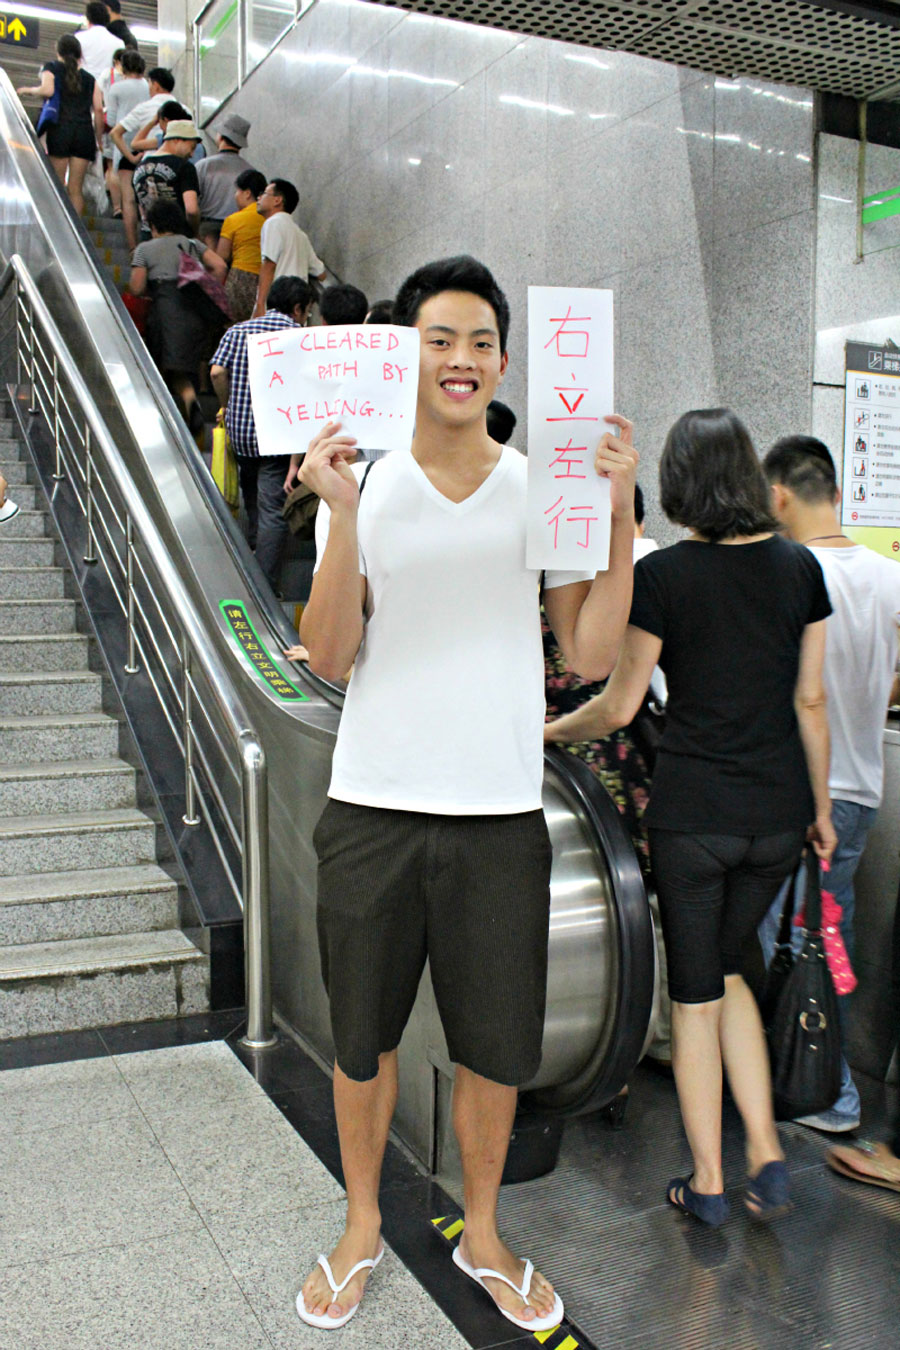 "Shanghai Calling Expat Stories - Kenny Wongs: ""I cleared a path by yelling '右立左行!'"""